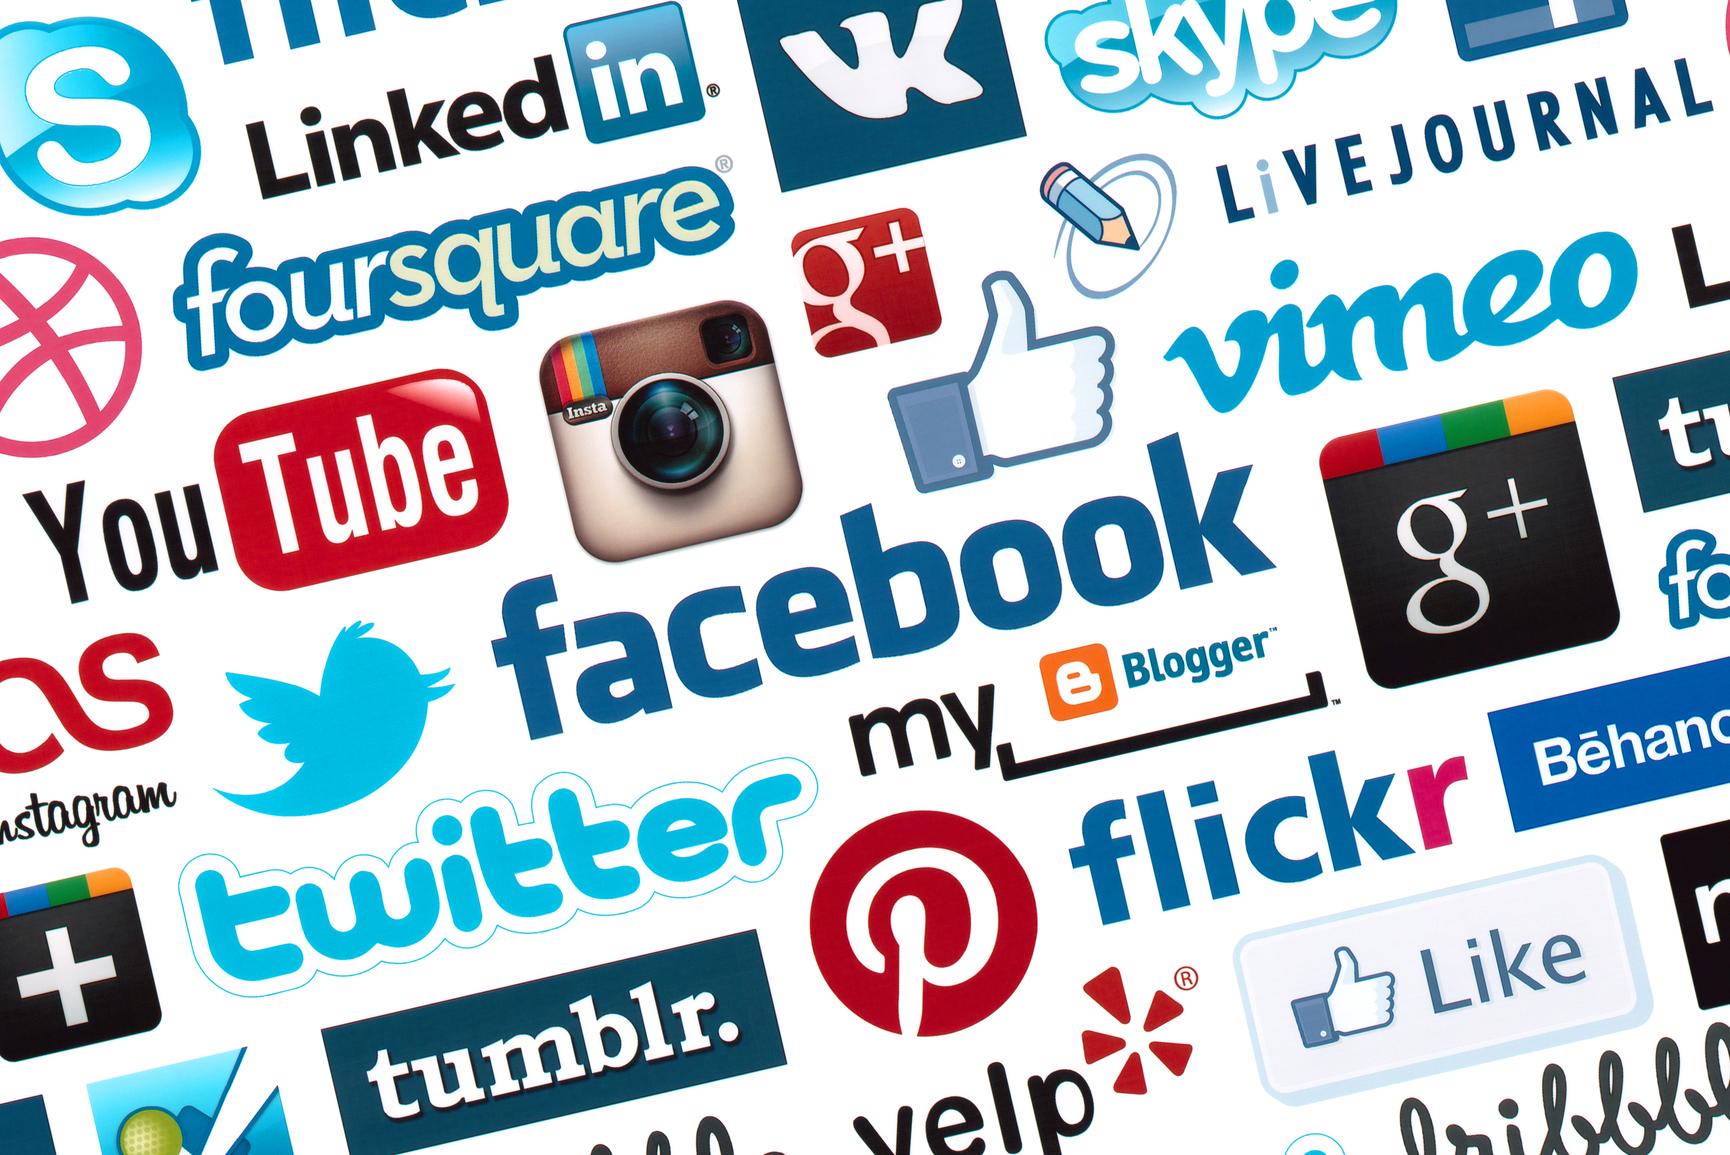 I will Add Your Website or Blog 20 High Authority Social Bookmarking Sites